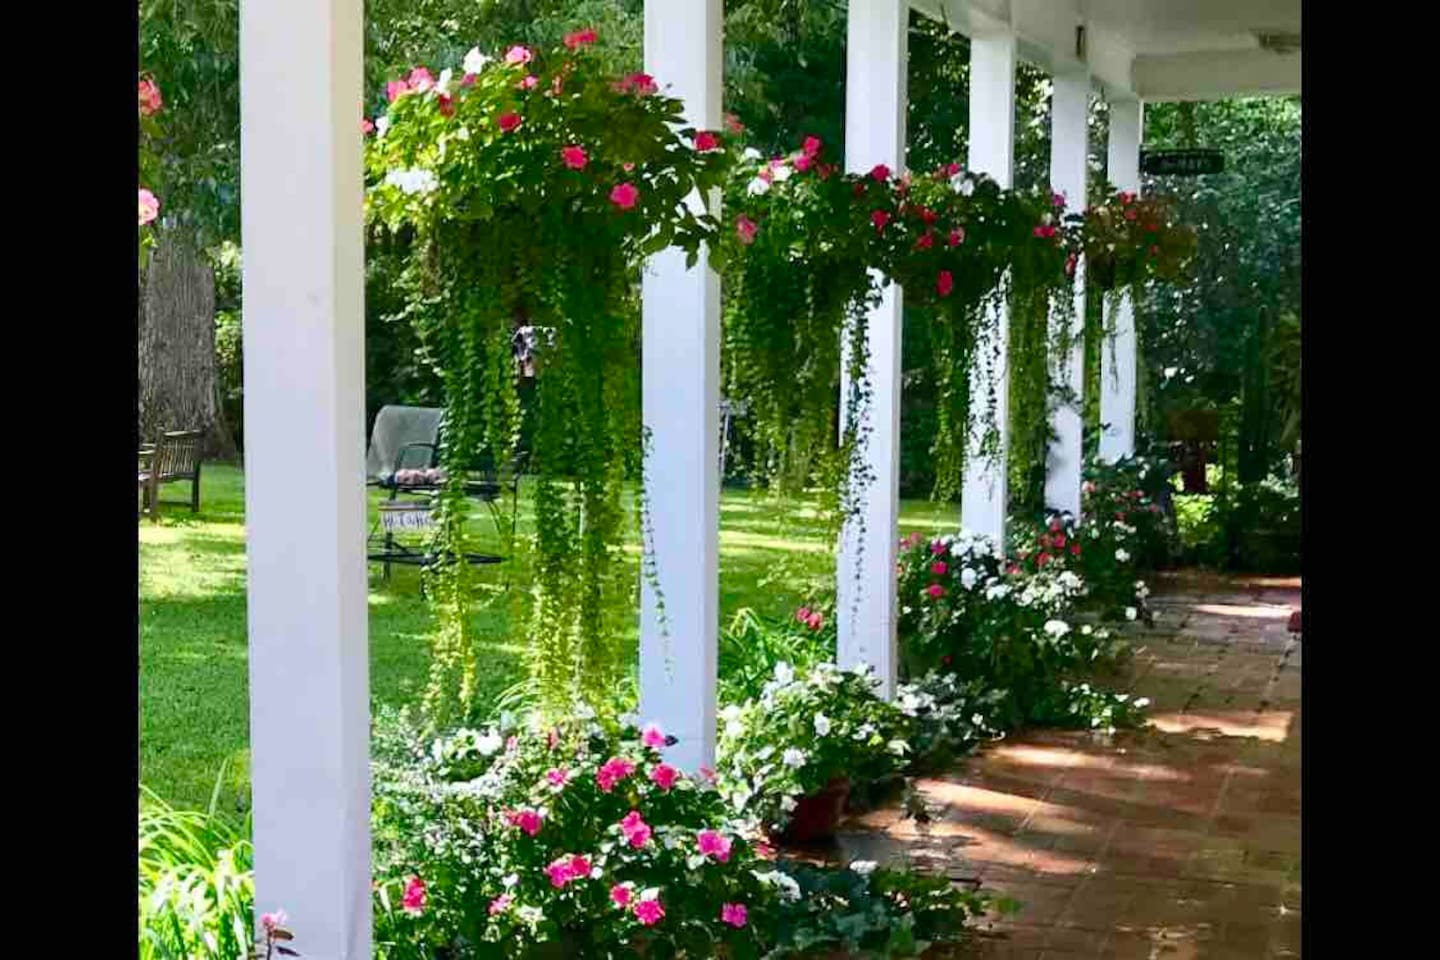 Hanging flower baskets grace the covered walkway entry to the Carriage House guest quarters.  Dreamy.